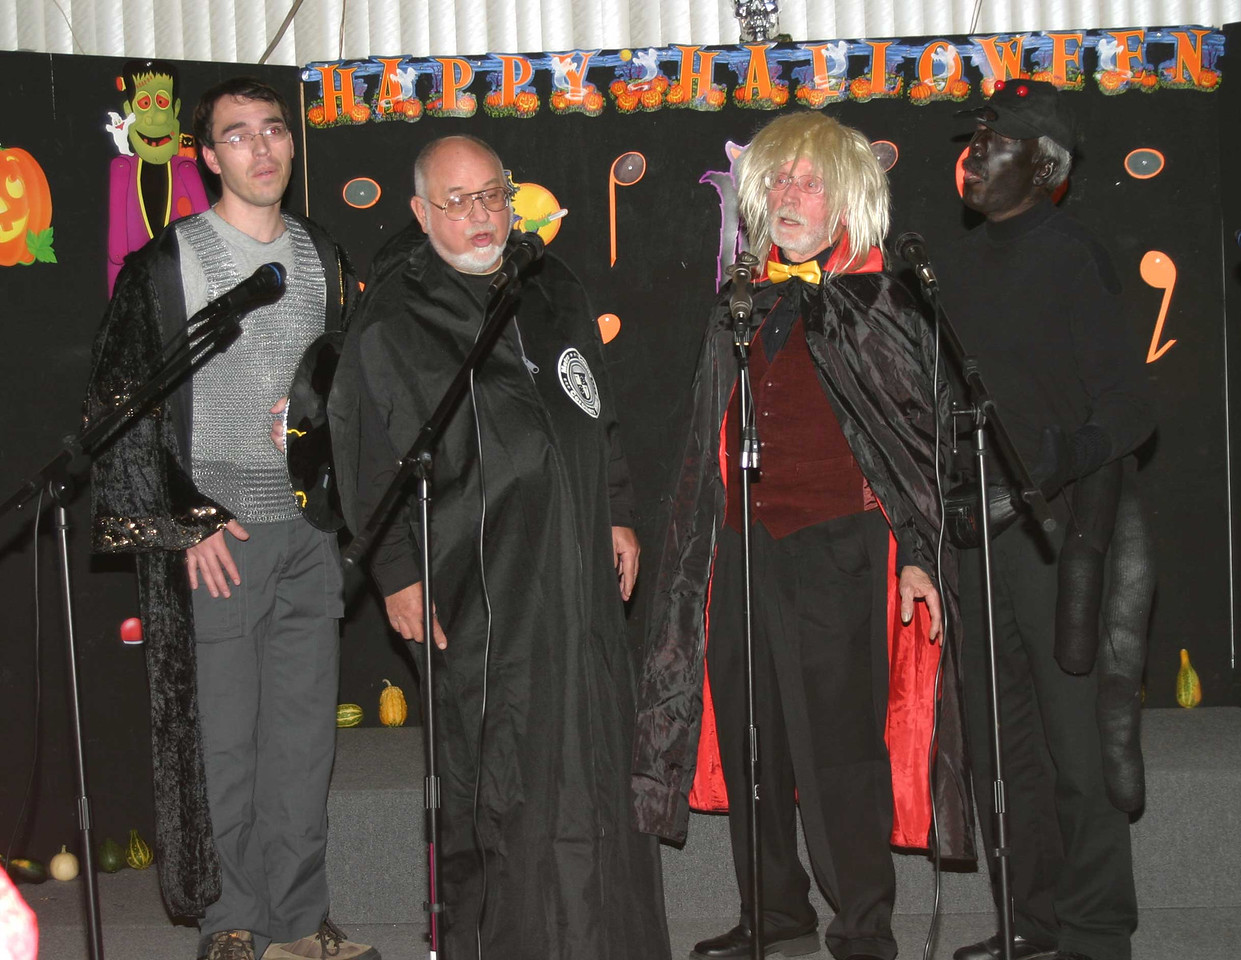 Wizards Show Appearance  2006